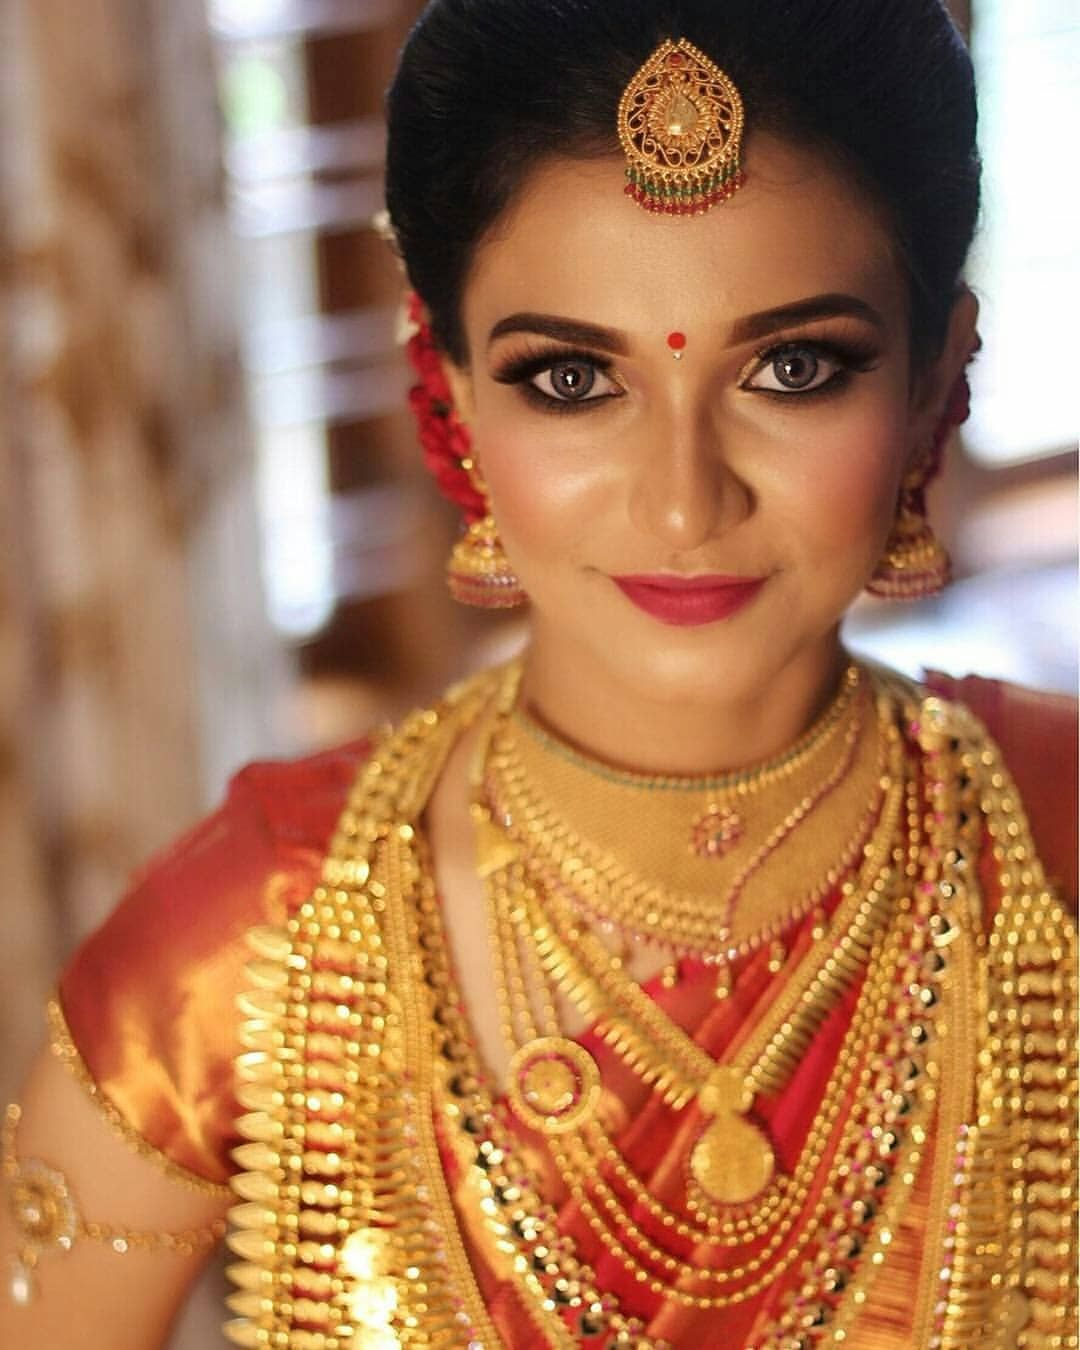 pin by shubham on indian culture | indian wedding jewelry